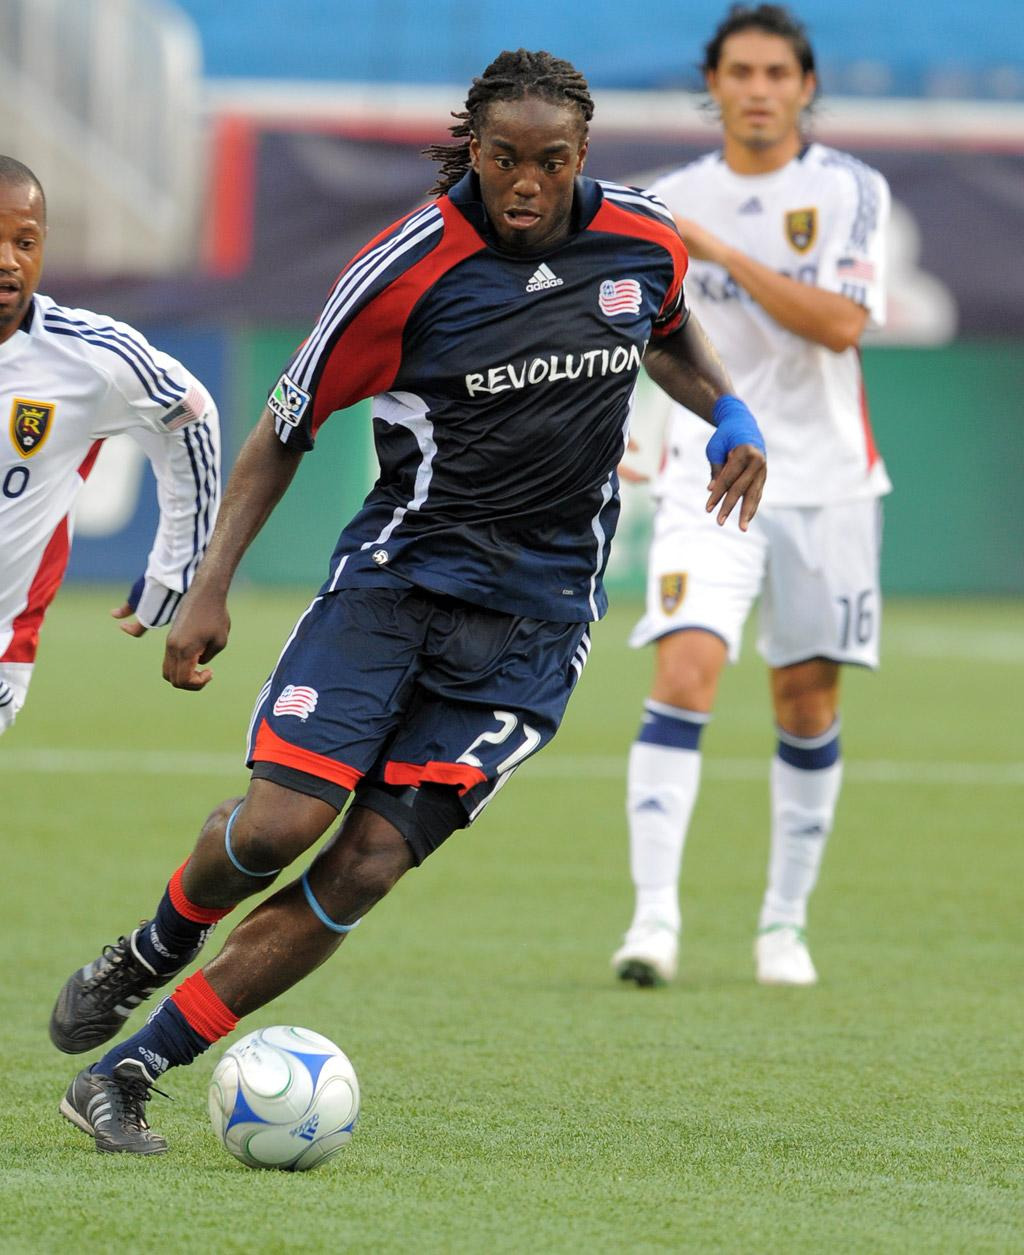 Revs visit 2009 champs on Friday night